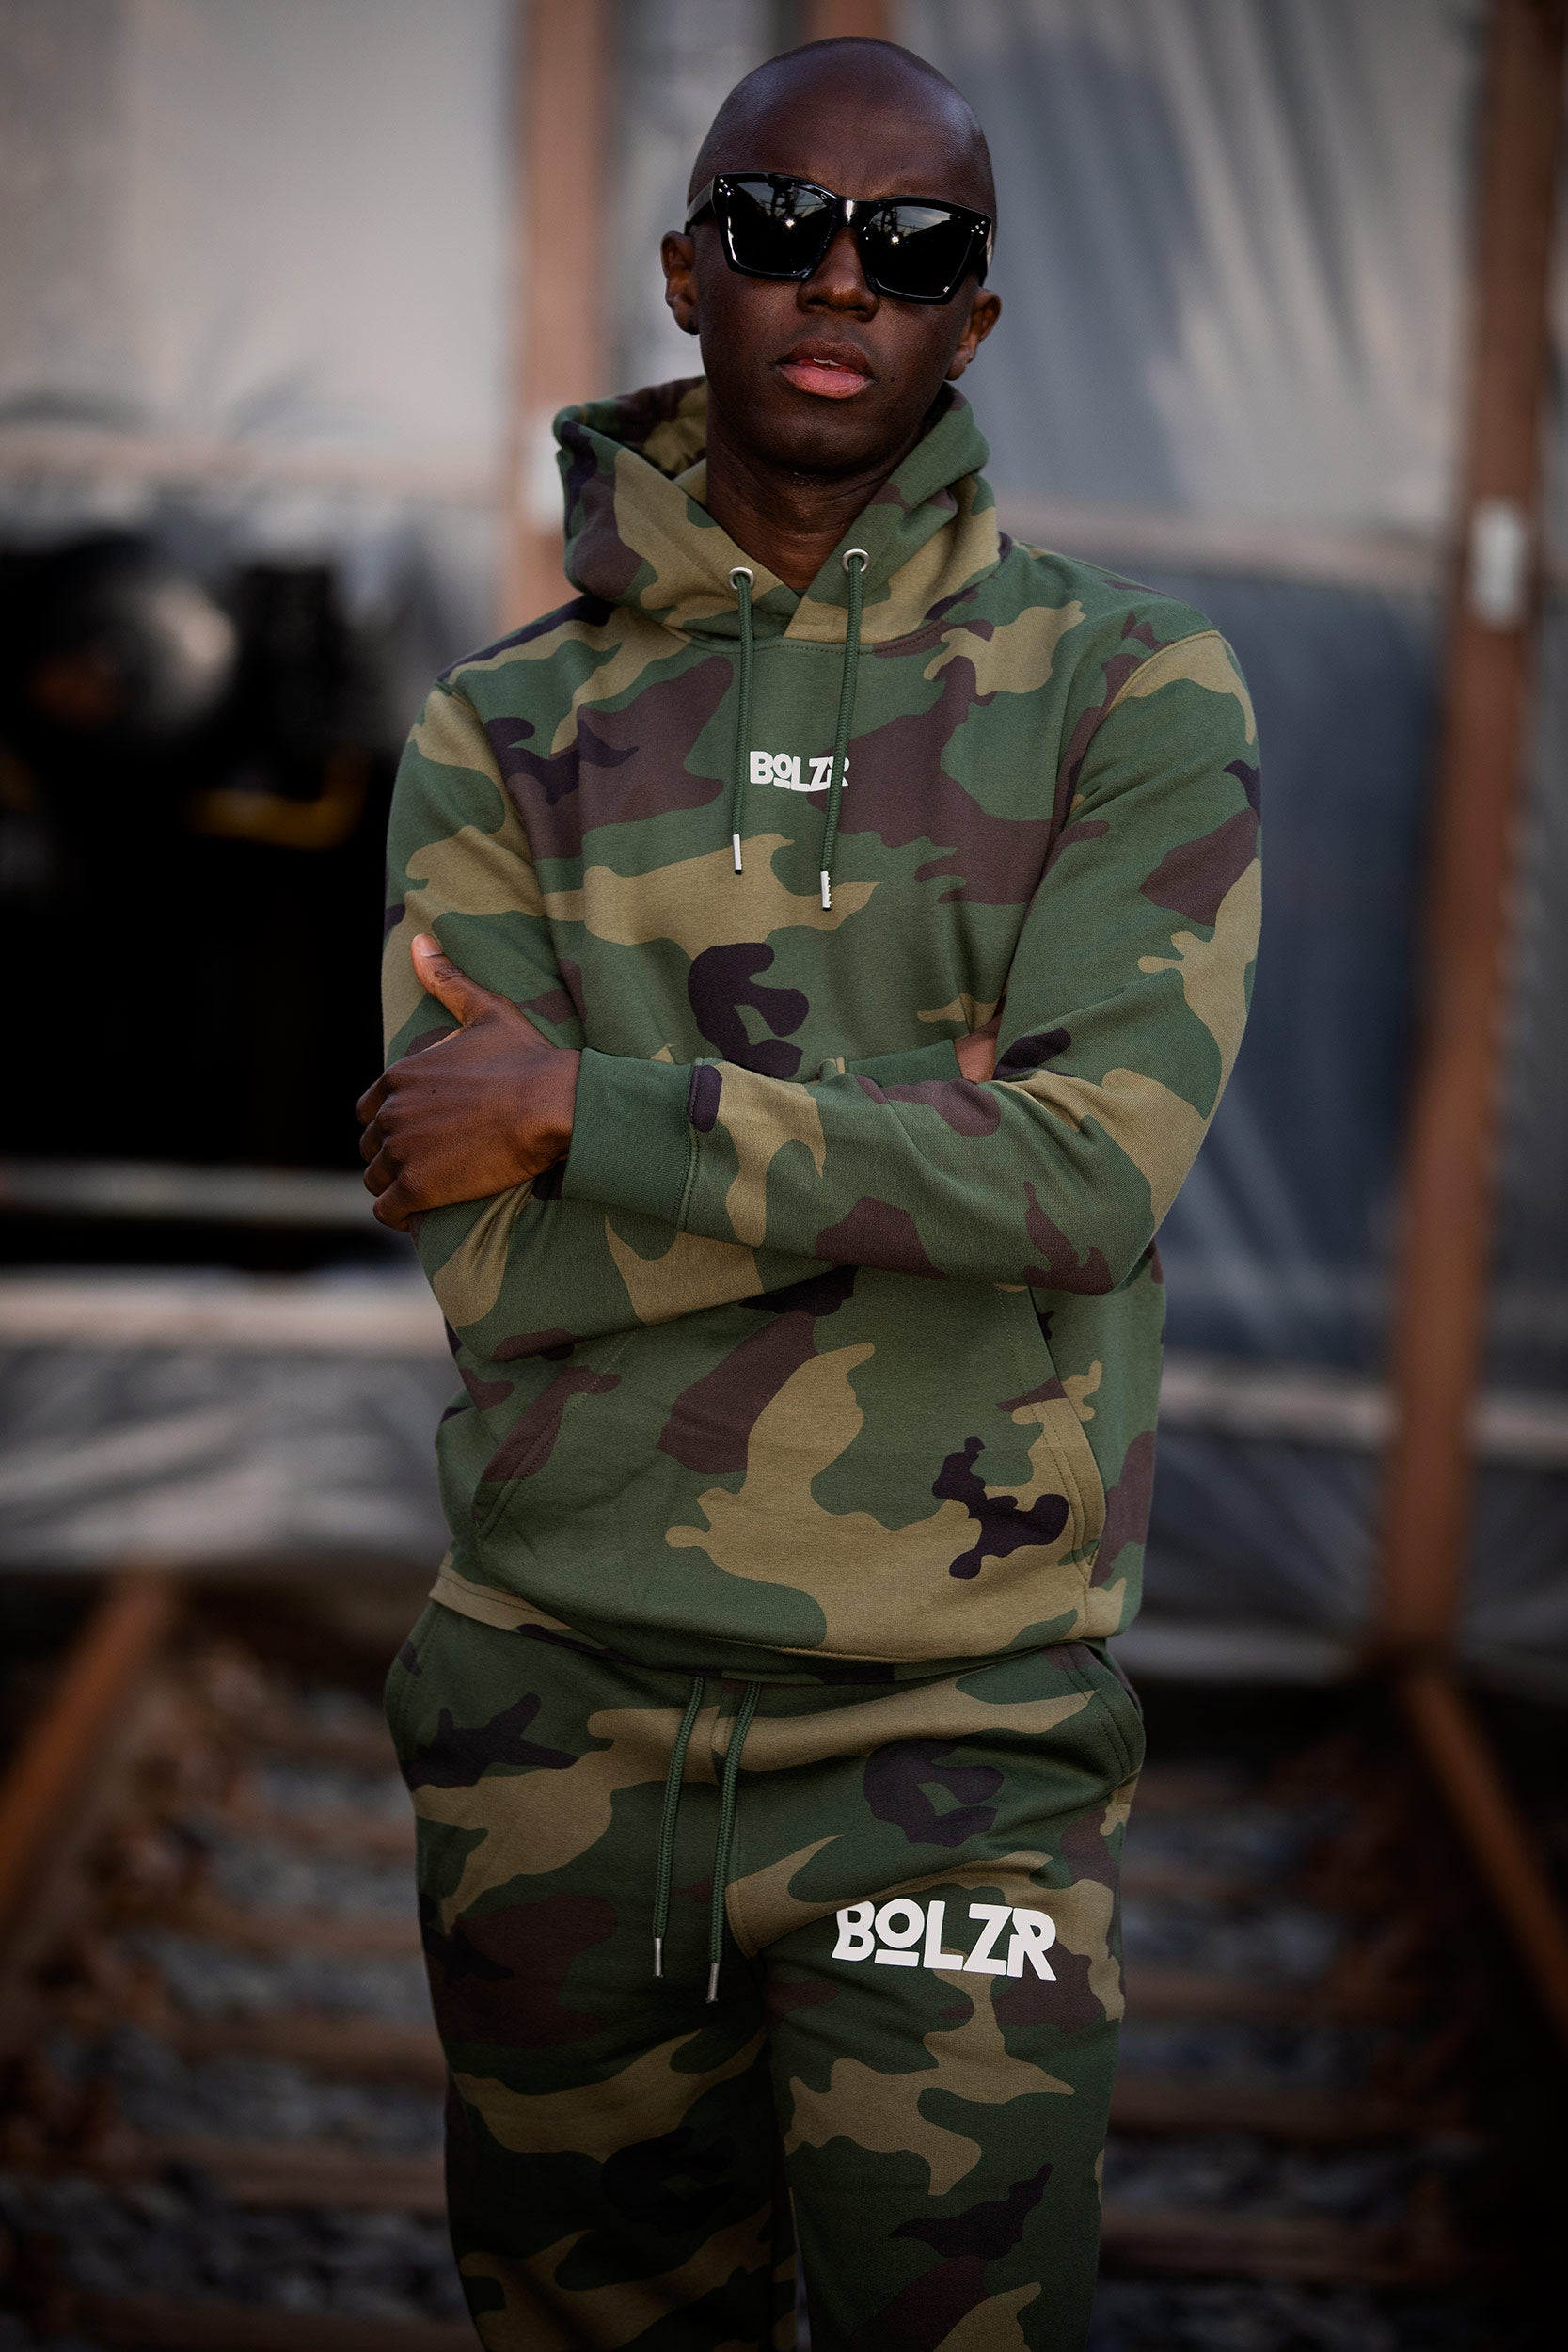 Bolzr Hoodie | Camouflage